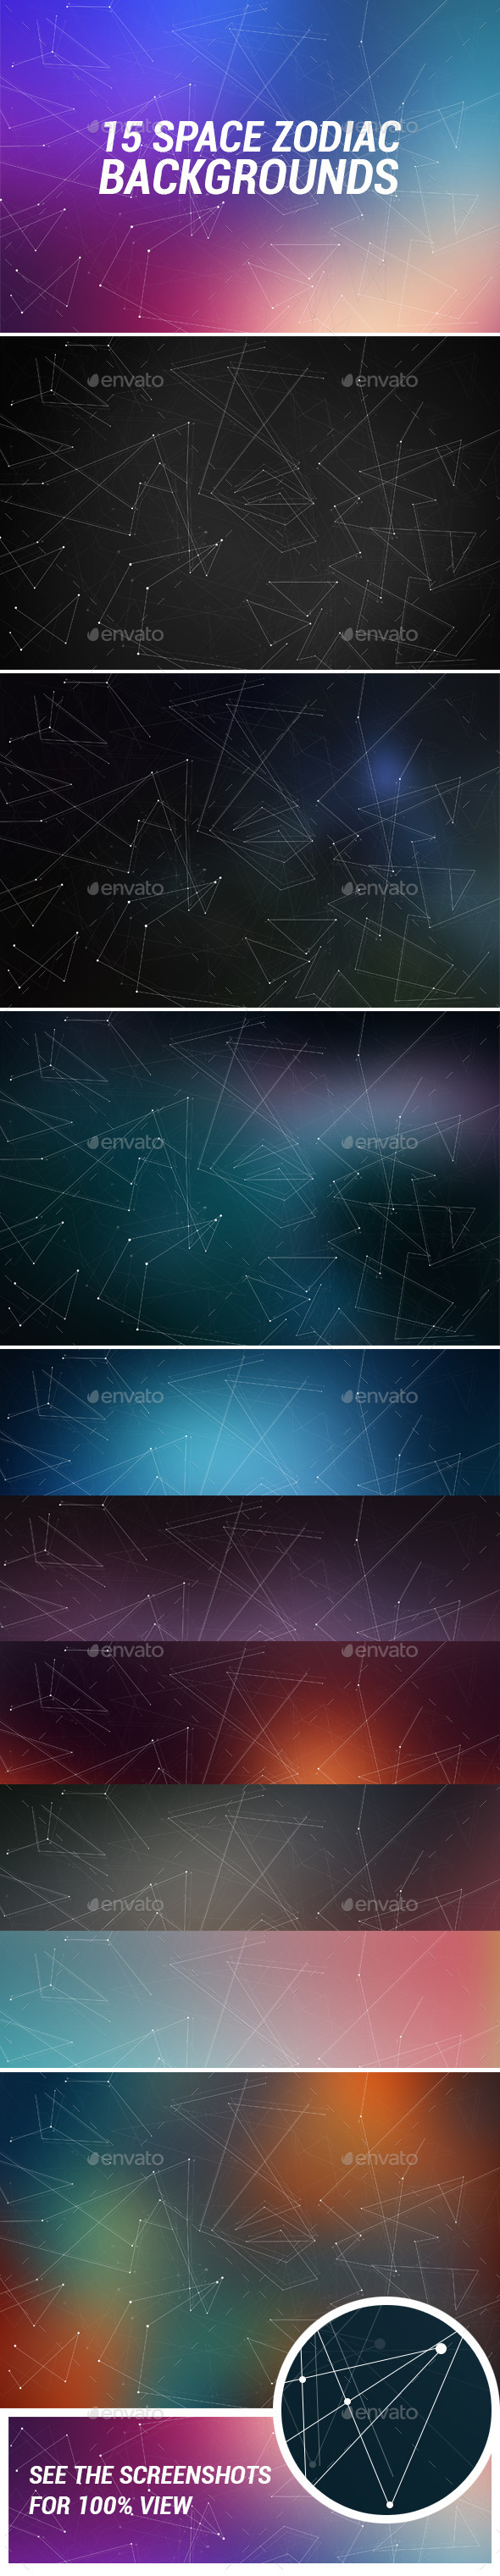 15 Space Zodiac Backgrounds - Backgrounds Graphics